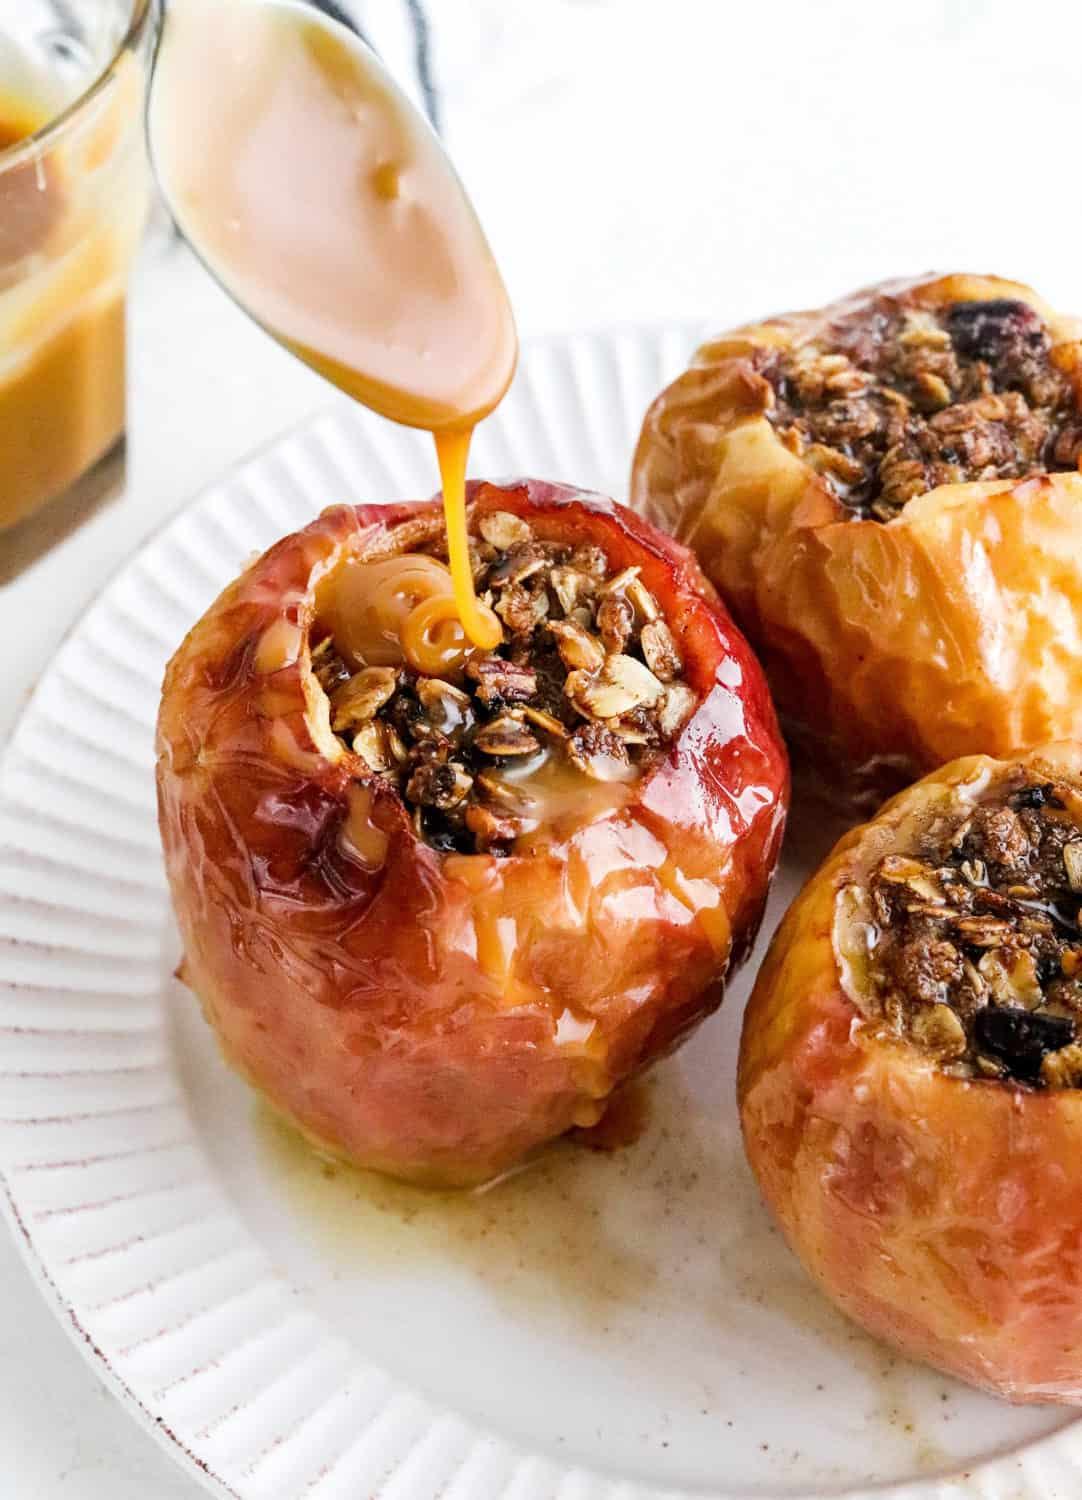 Spoon dripping caramel sauce onto a red soft filled baked apple with two more baked apples next to it on a round white plate and a jar of caramel sauce behind it.